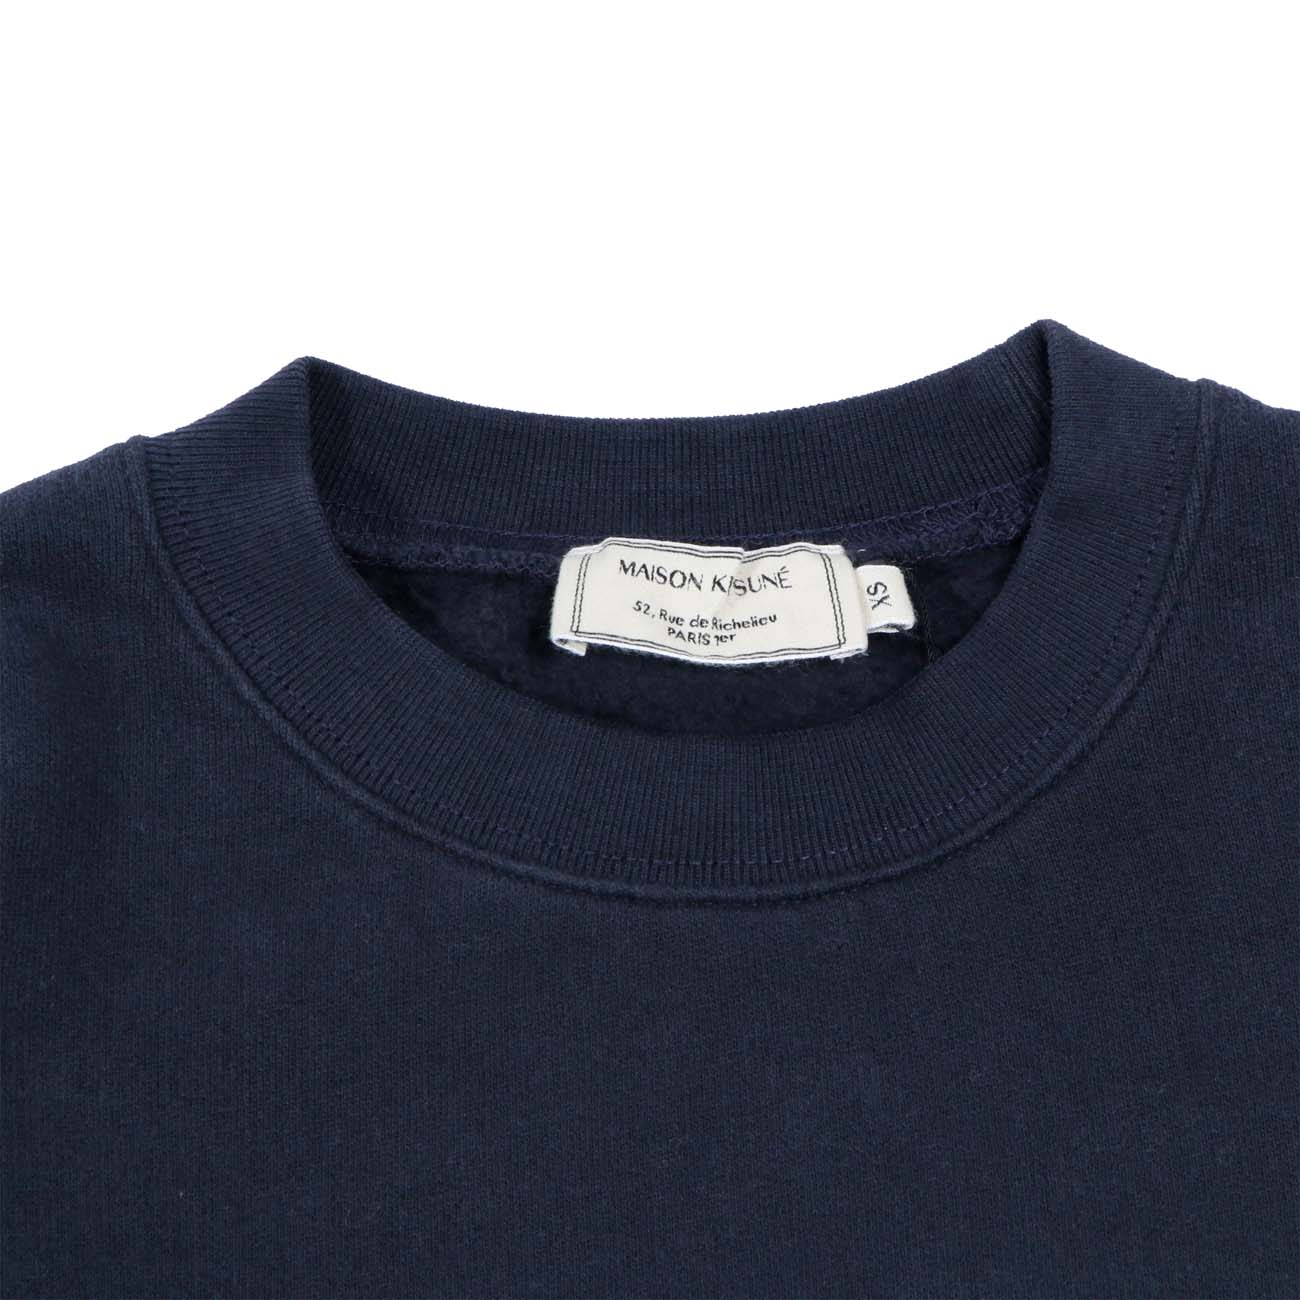 MAISON KITSUNE スウェット REGULAR SWEAT NAVY